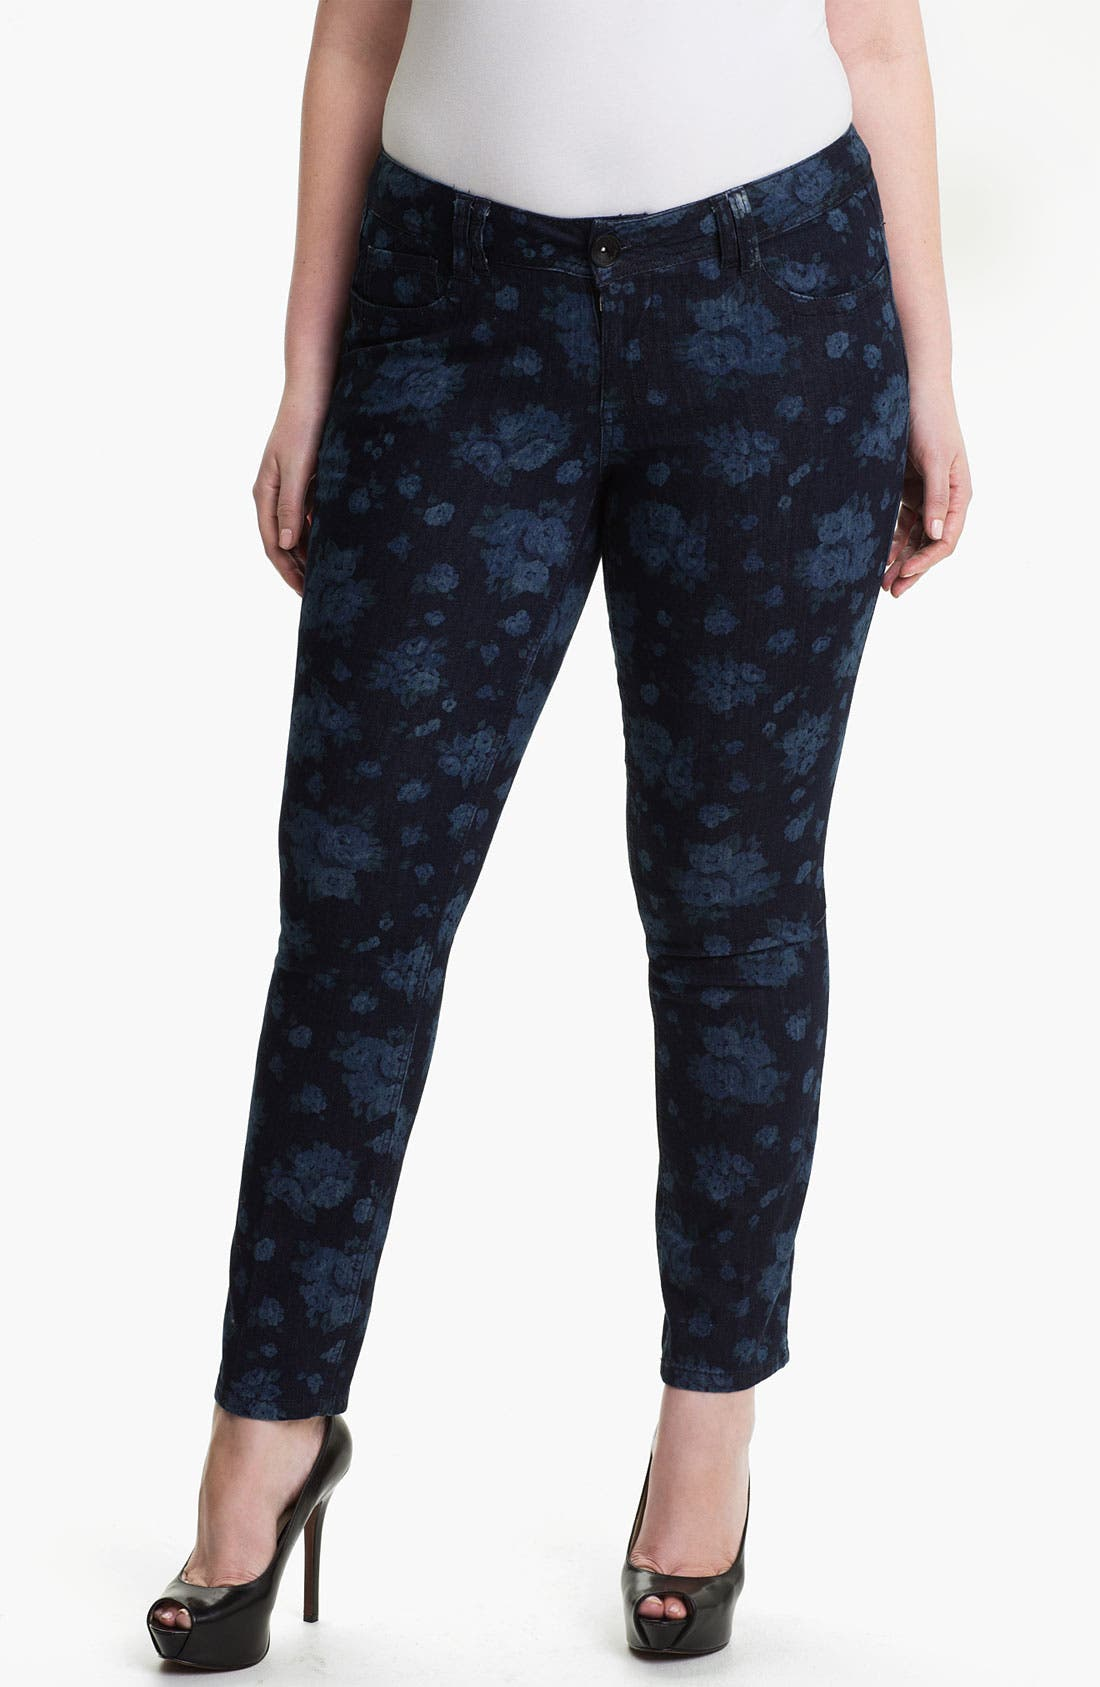 Alternate Image 1 Selected - Wit & Wisdom Floral Print Leggings (Plus) (Nordstrom Exclusive)